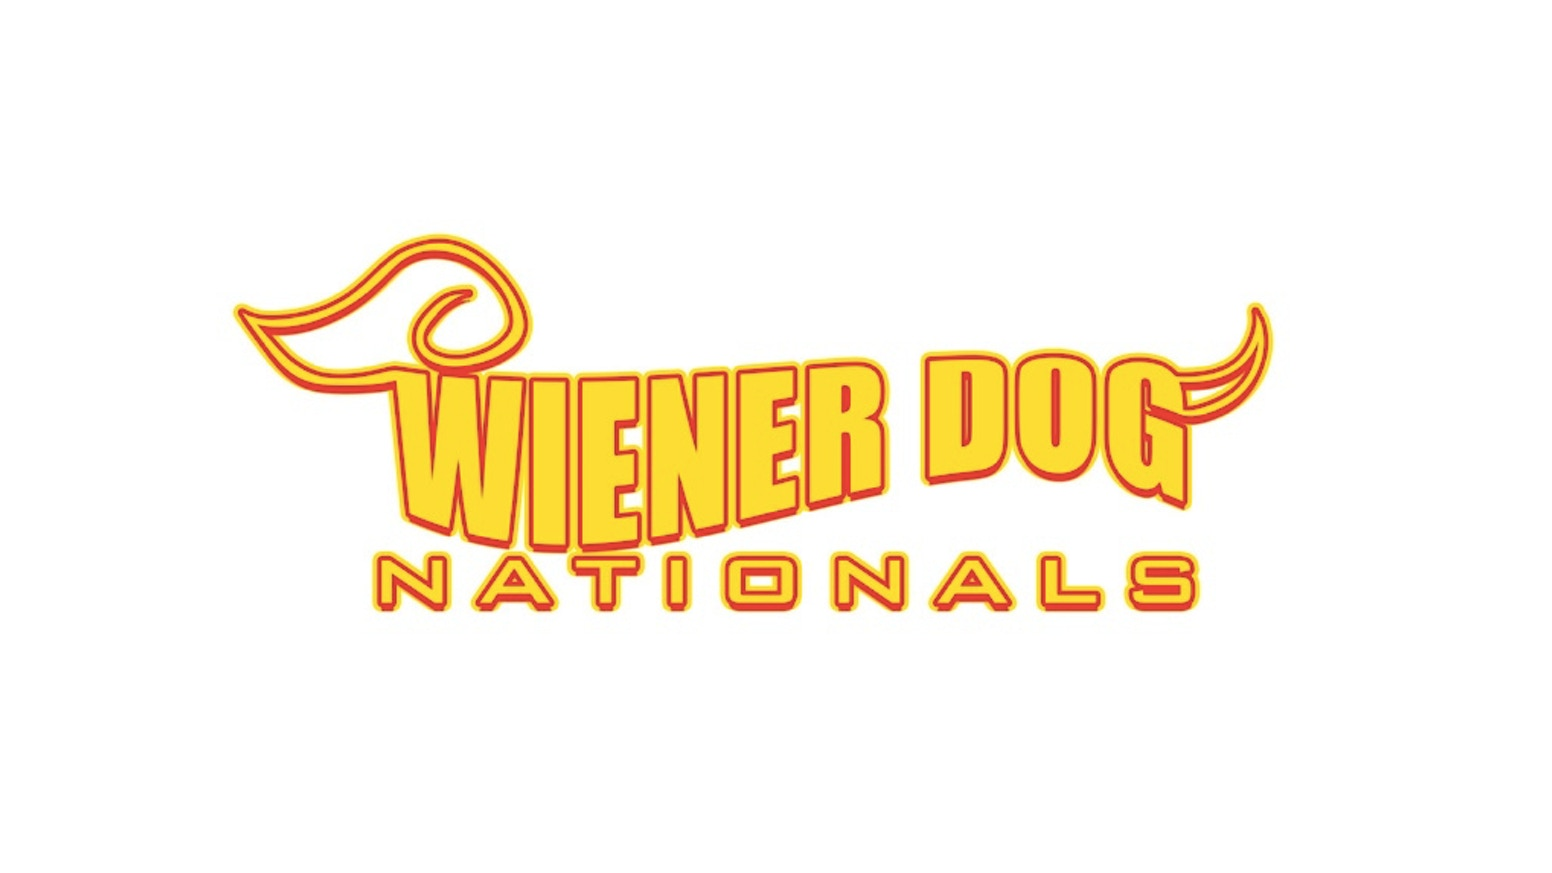 A Kid and Dog movie based off the actual races held each year by hotdog chain Wienerschnitzel!  One Nation, One Race, One Wiener.